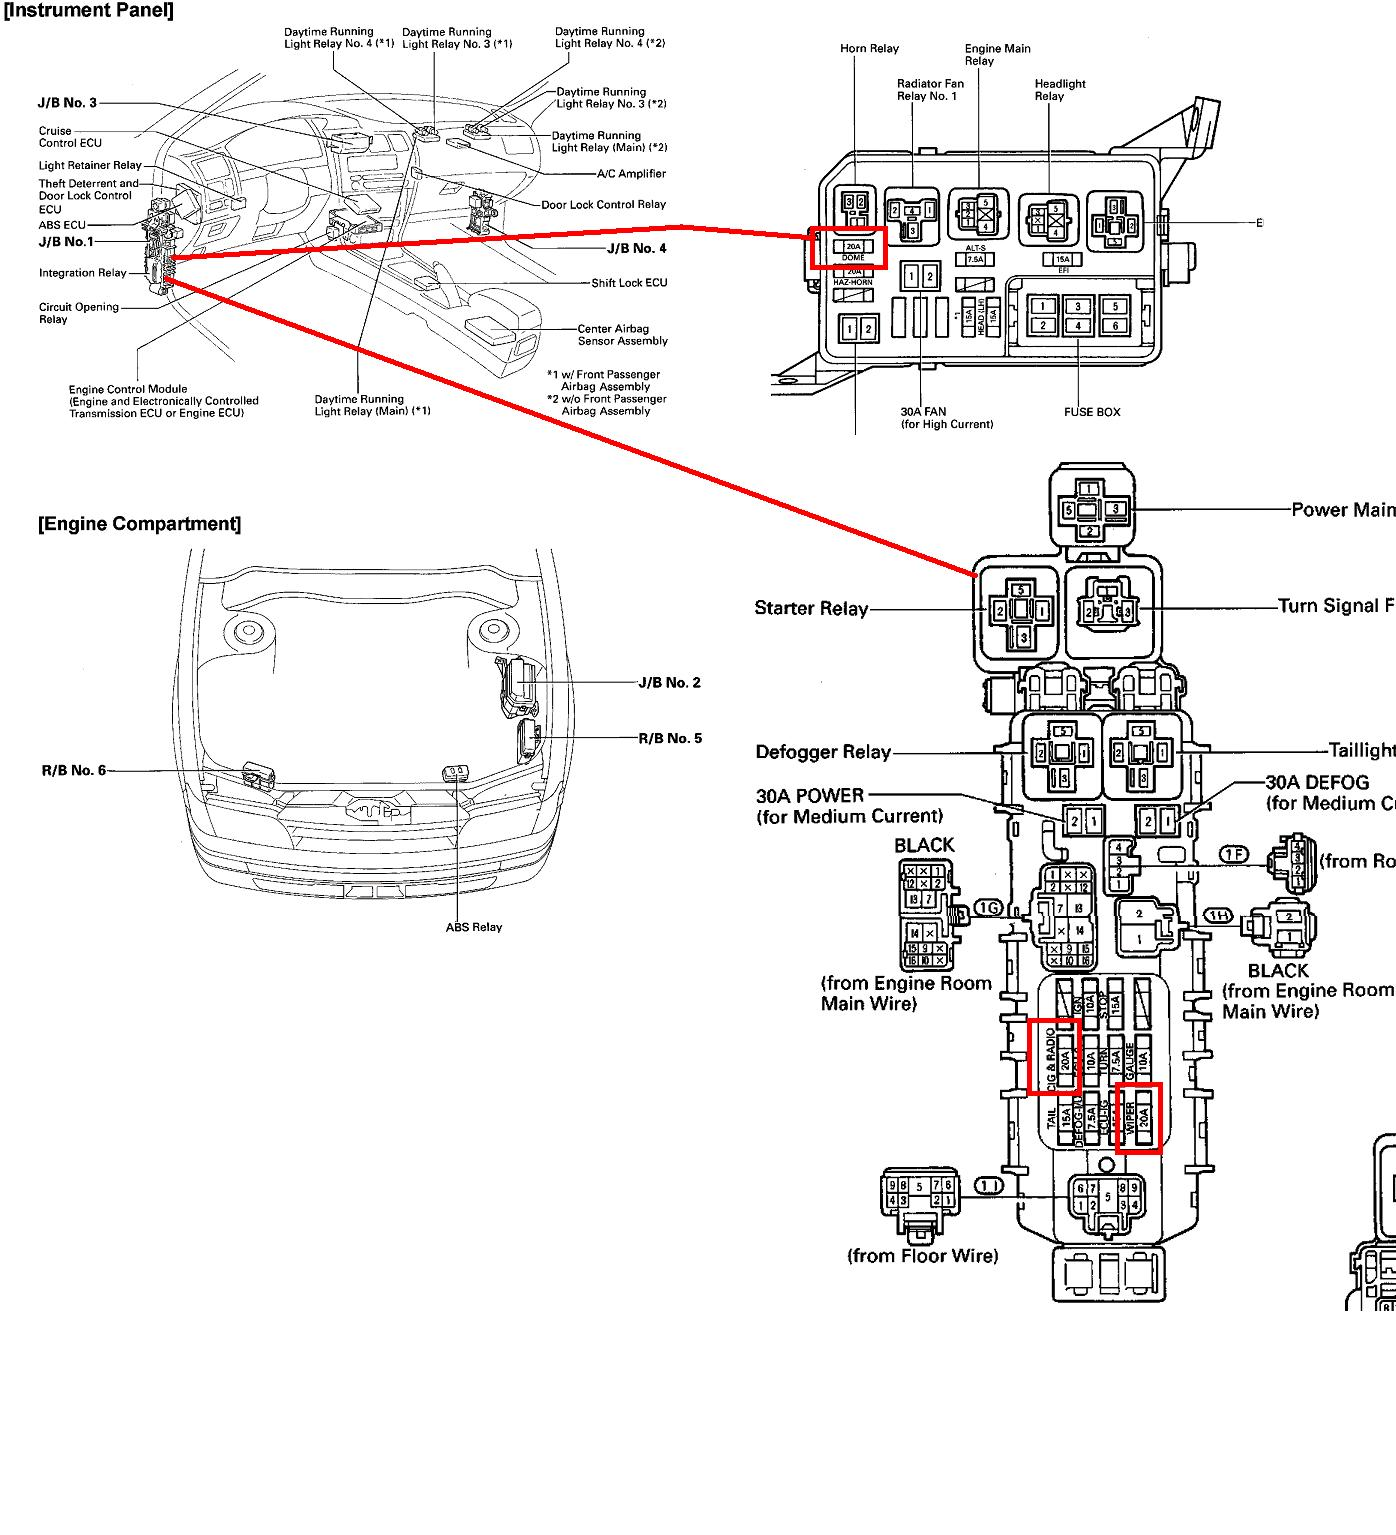 93F0 Toyota Previa Fuse Box Diagram | Wiring Resources